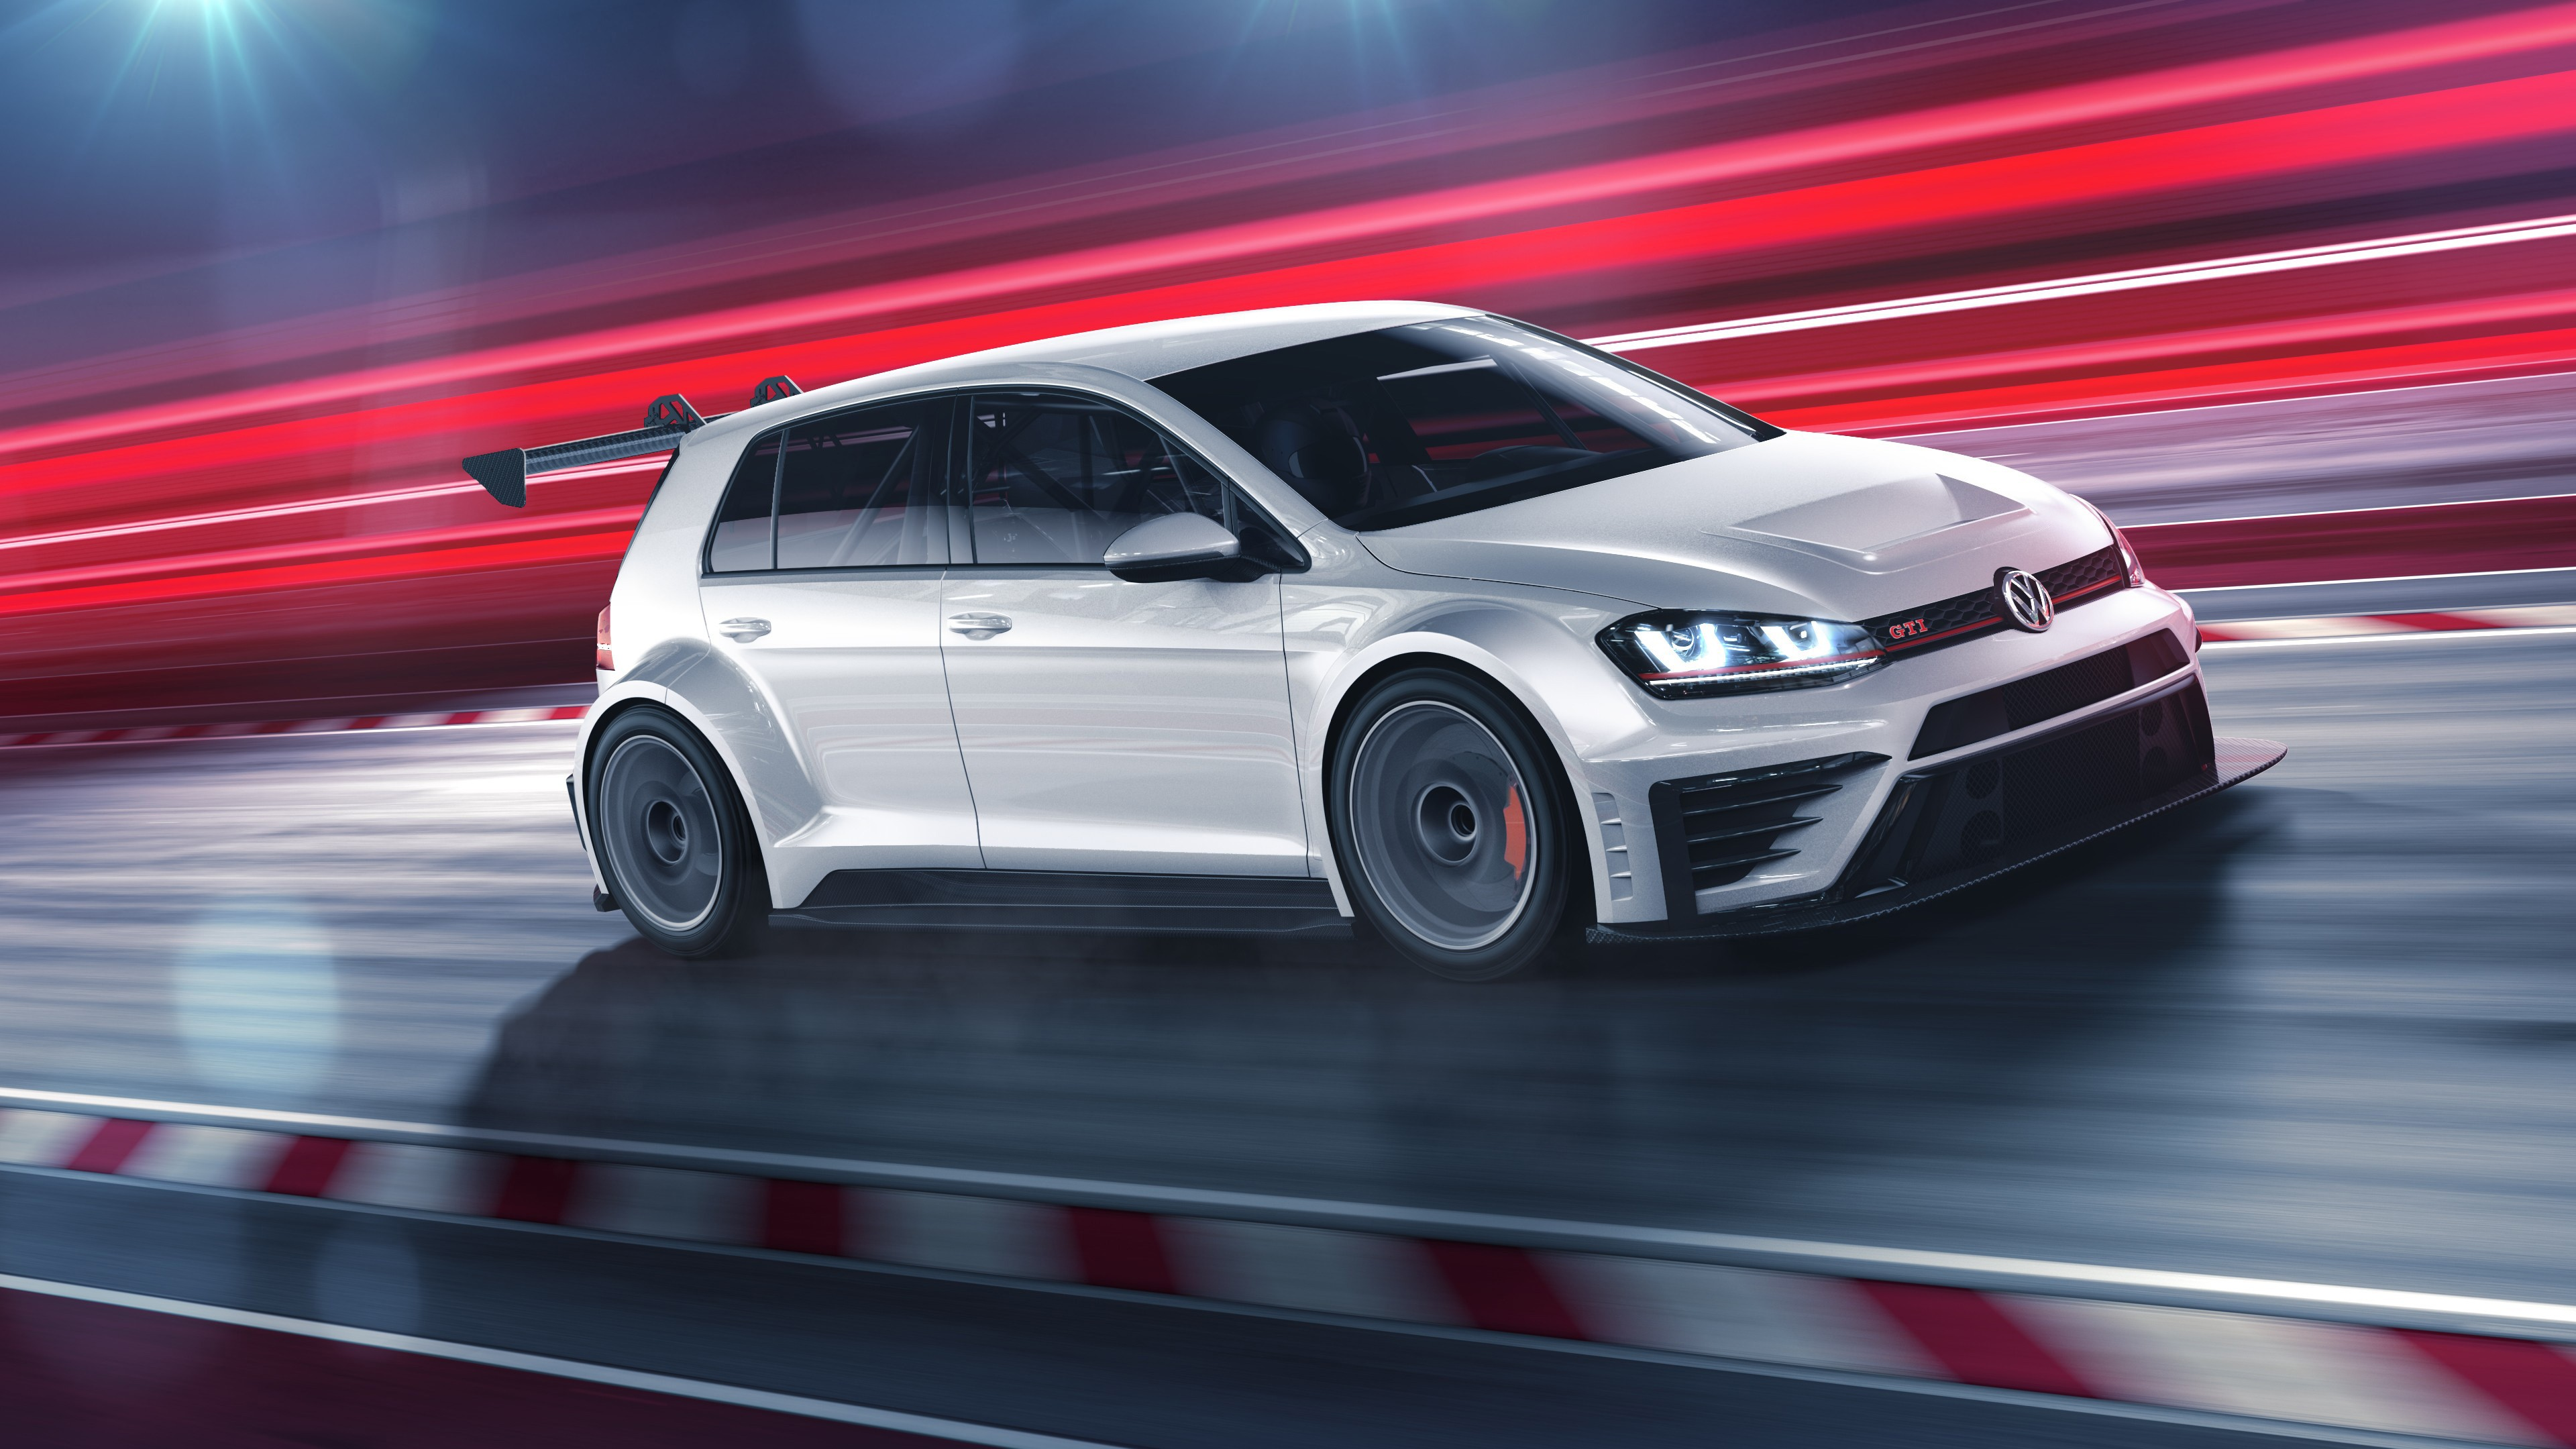 Volkswagen Golf Gti Tcr 2016 4k Wallpaper Hd Car Wallpapers Id 6303